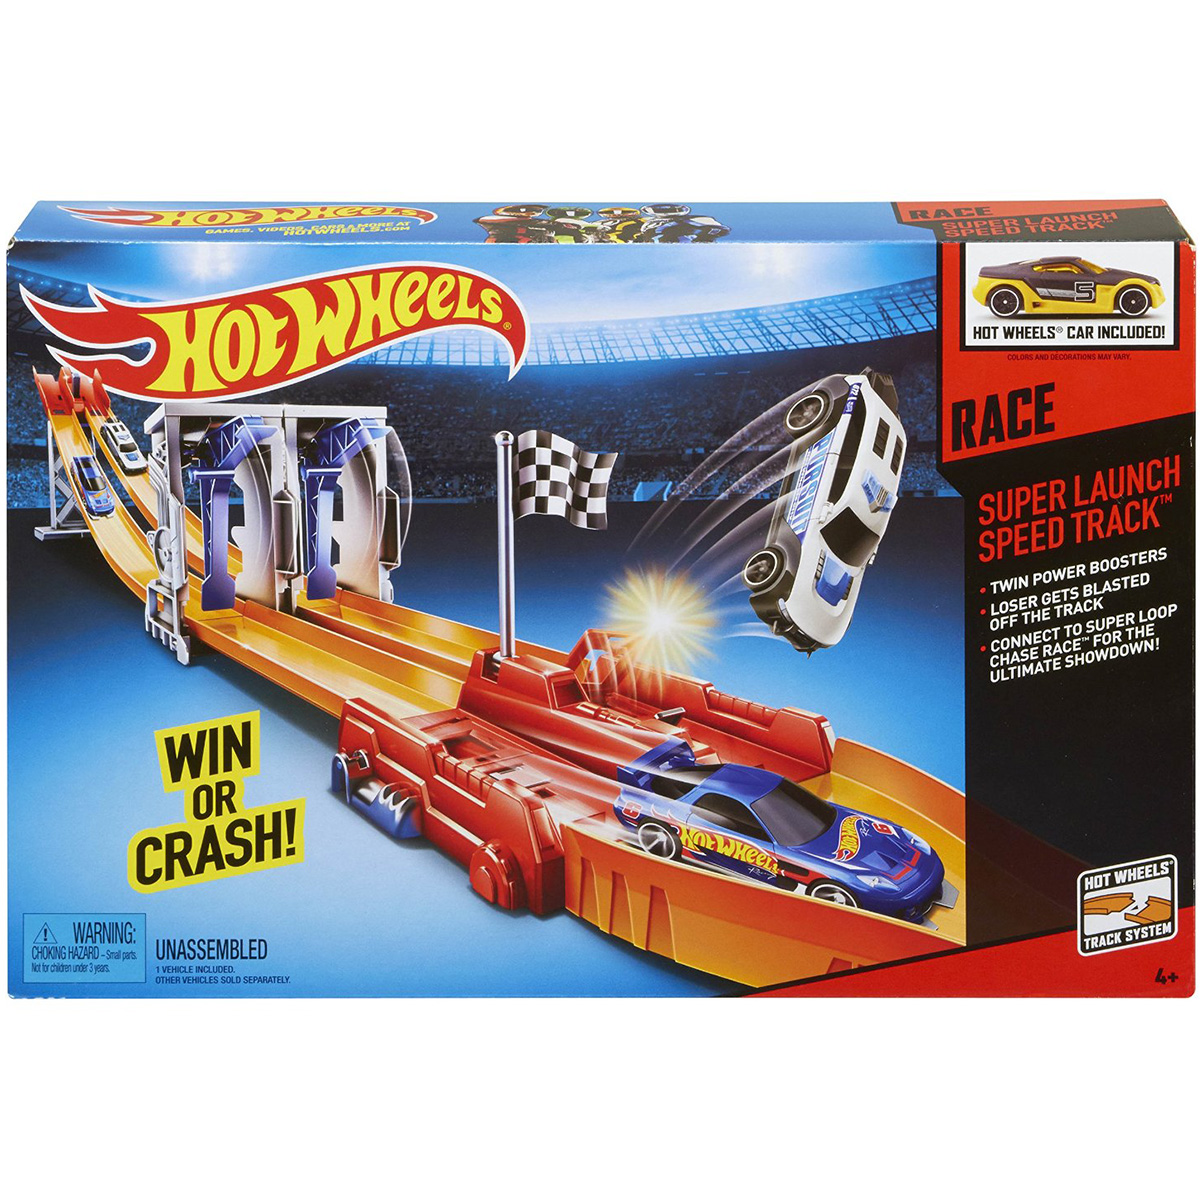 Dong co dua cao toc Hot Wheels BGJ24